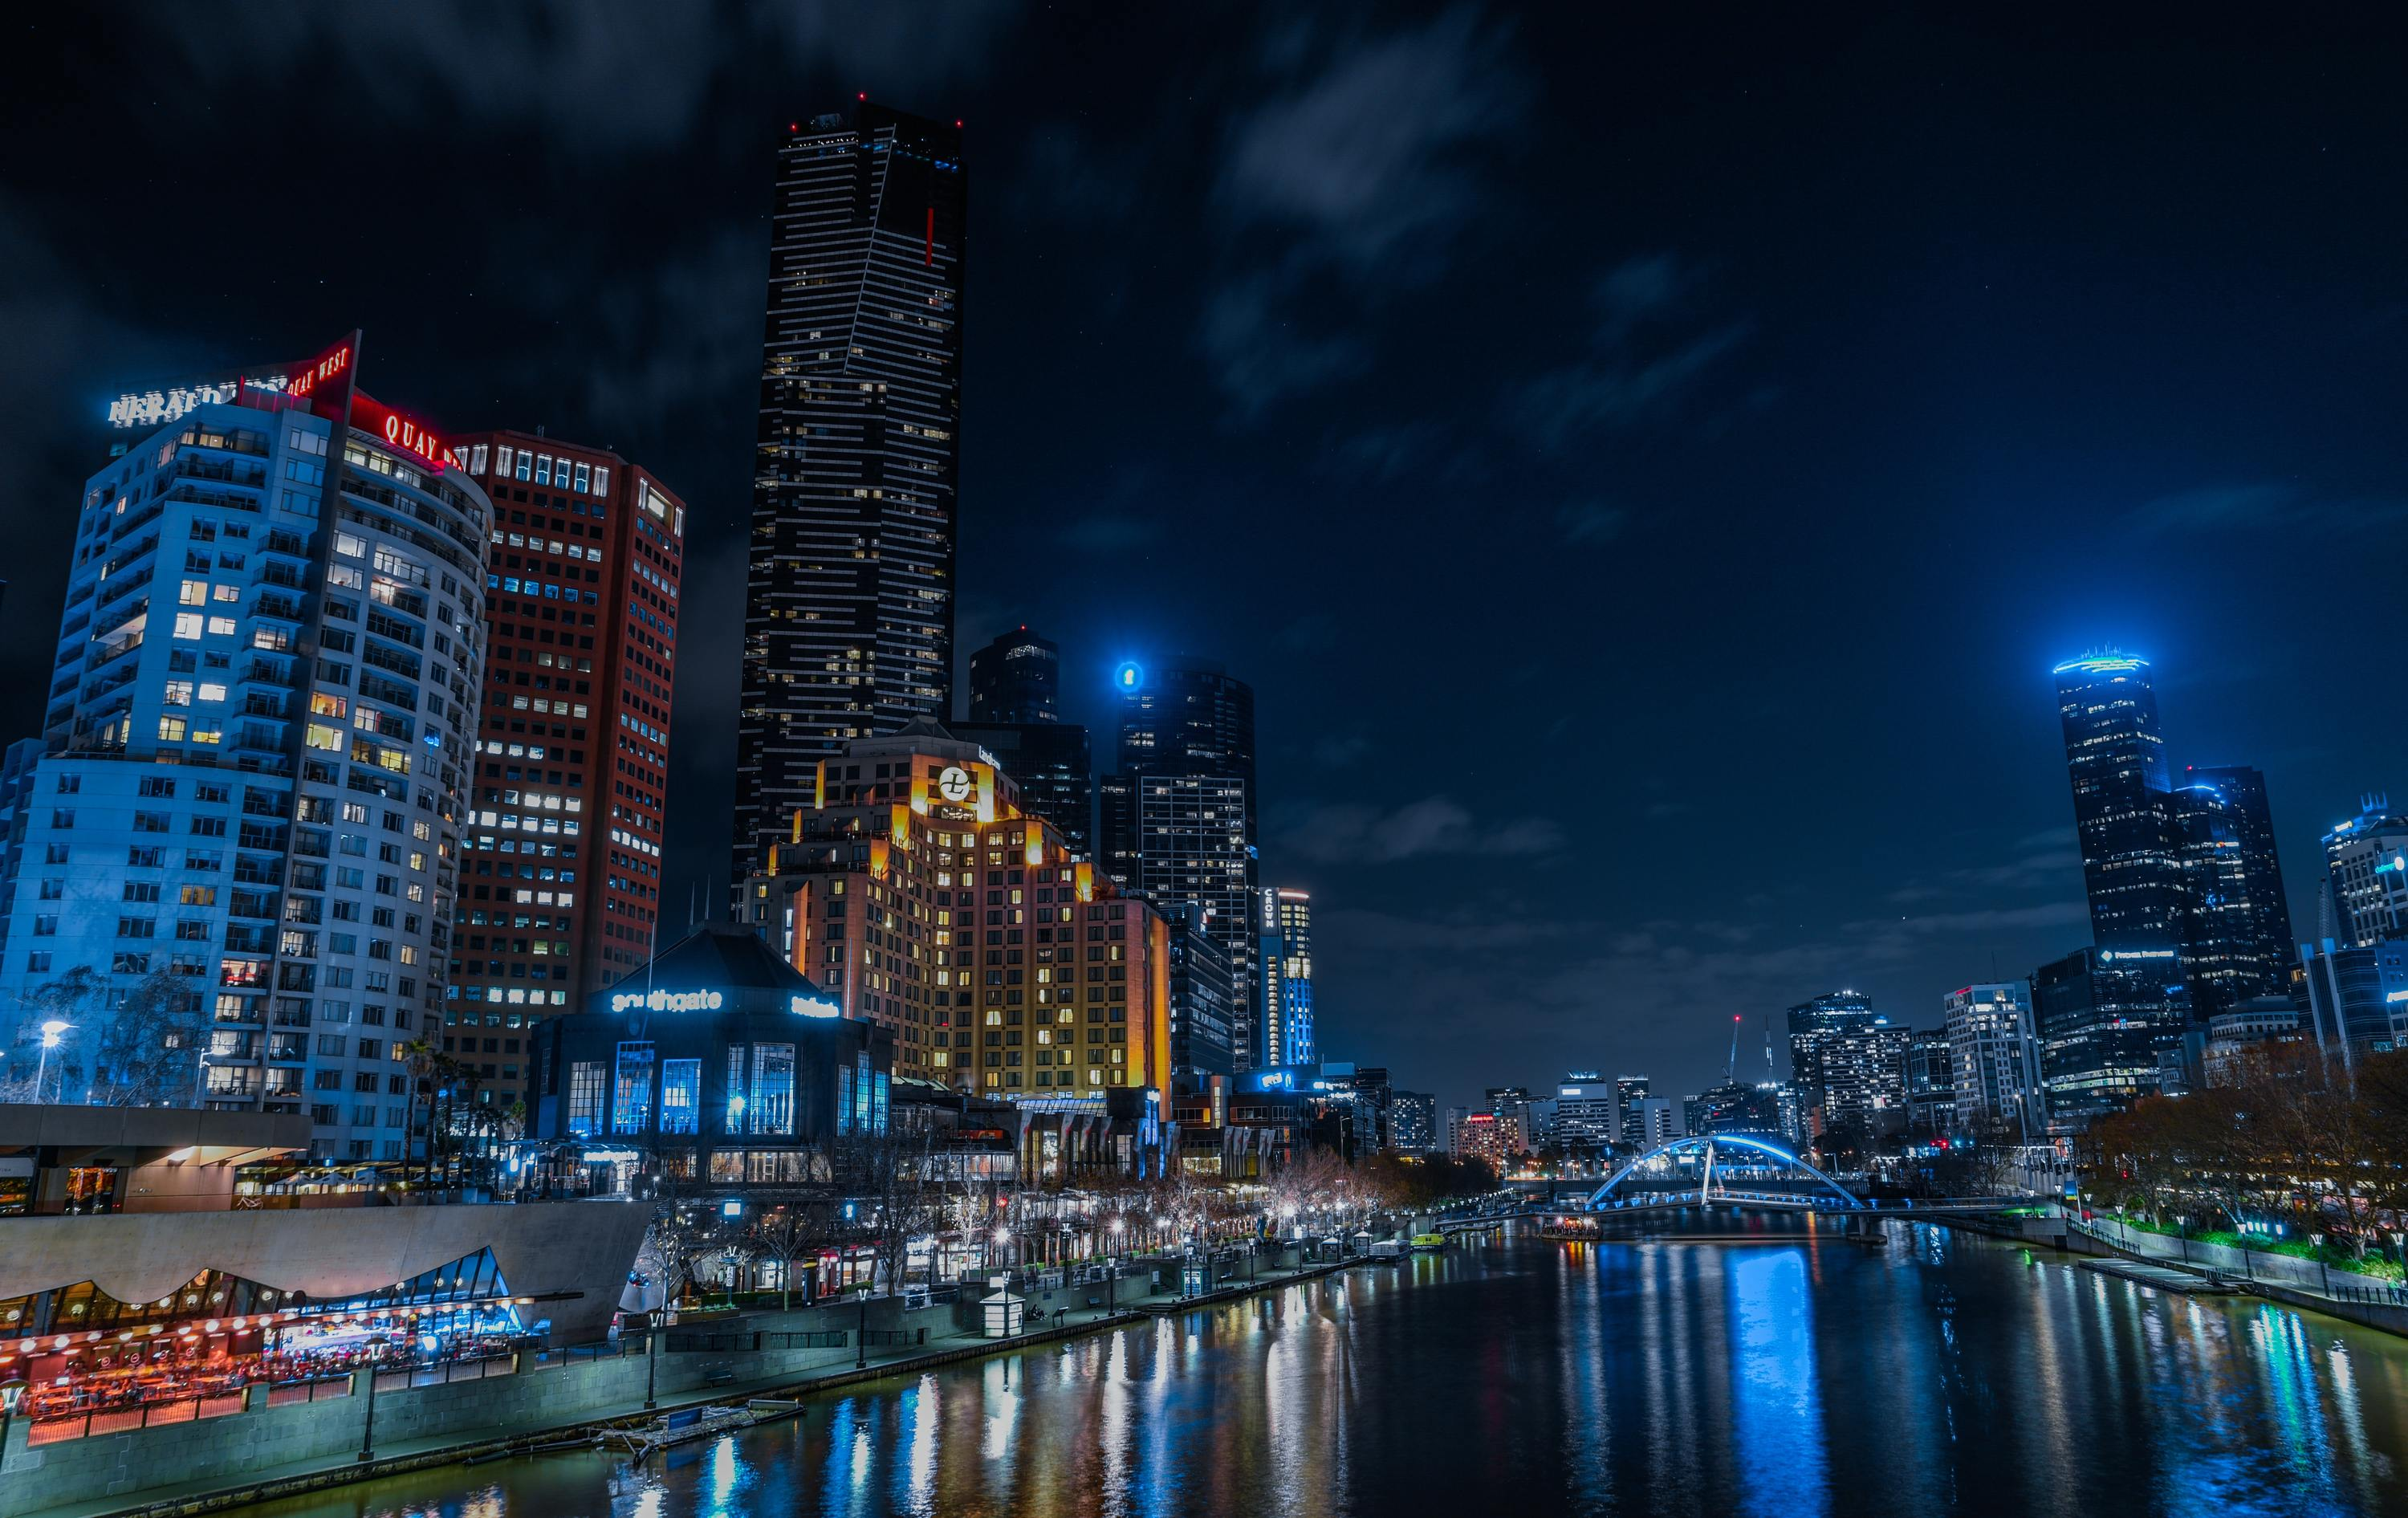 Melbourne CBD residents started screaming outside their windows last night